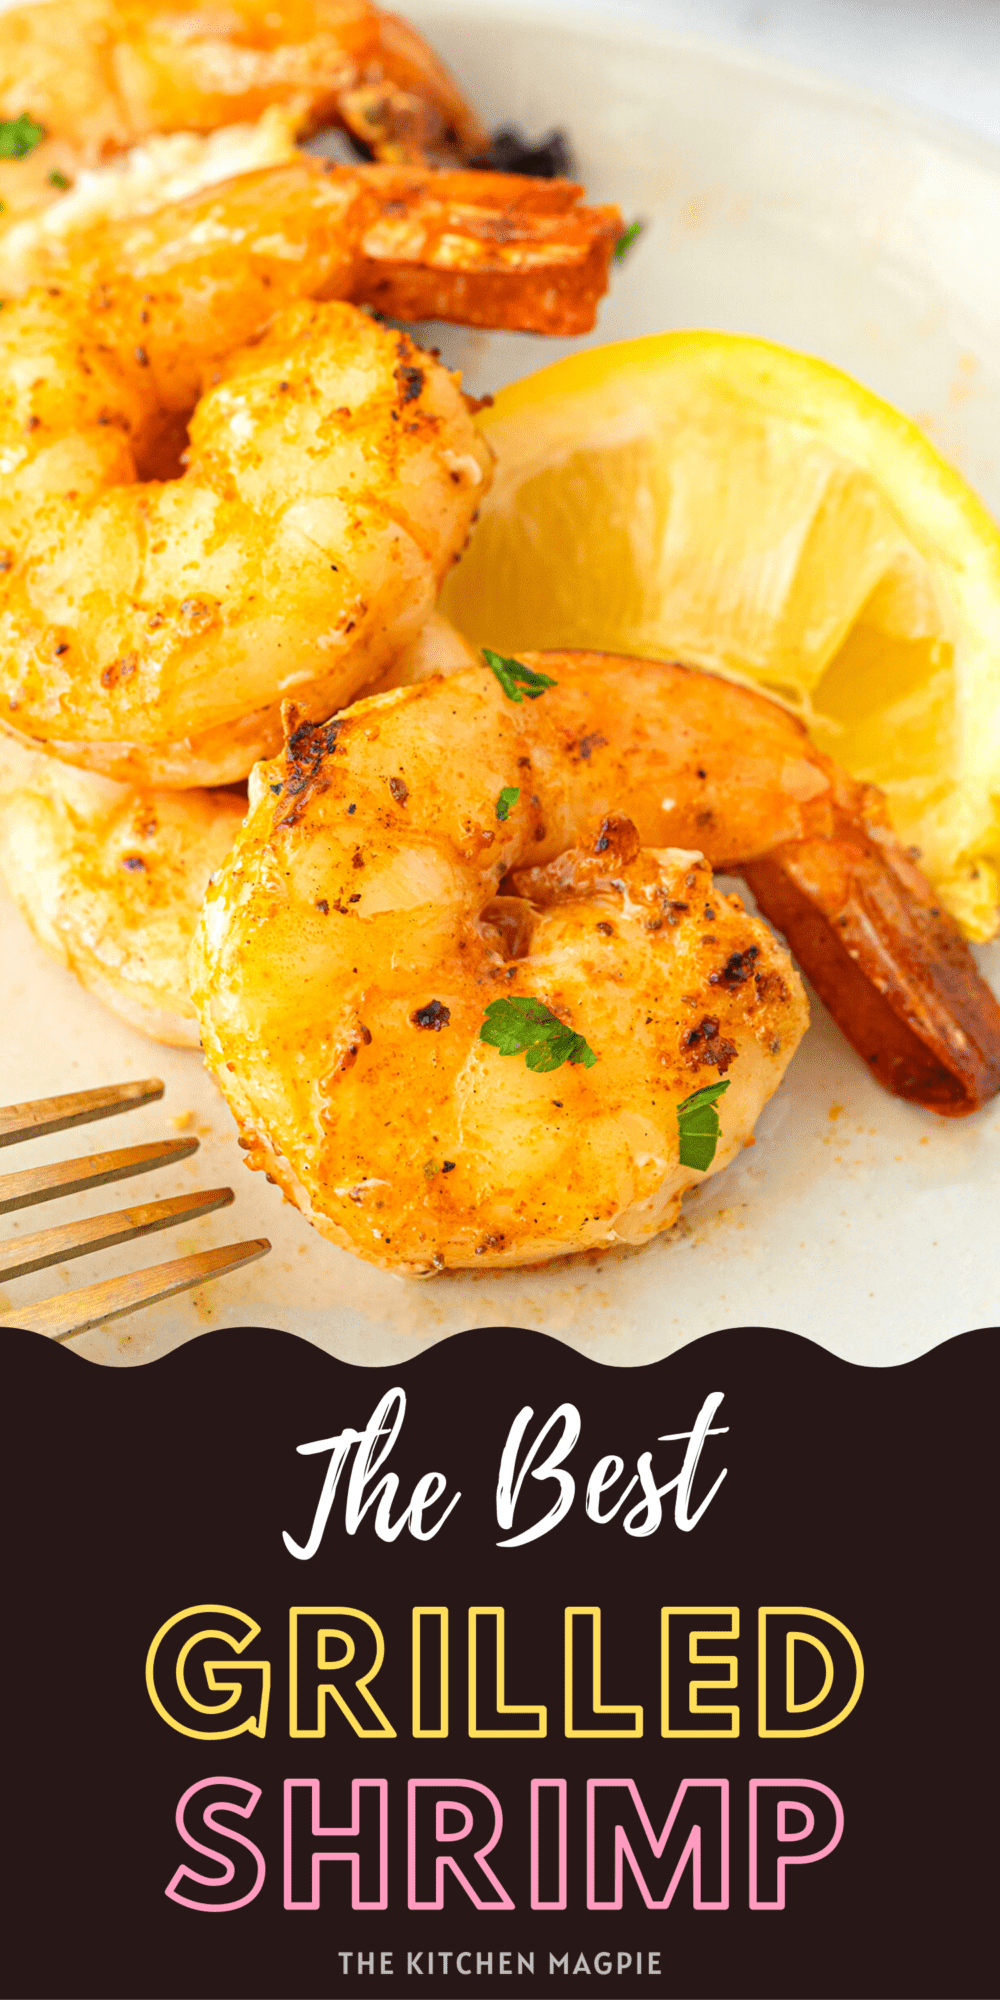 Juicy, succulent, and a ton of flavor, grilled shrimp is the perfect seafood grilling option - here are two different flavors in one recipe!